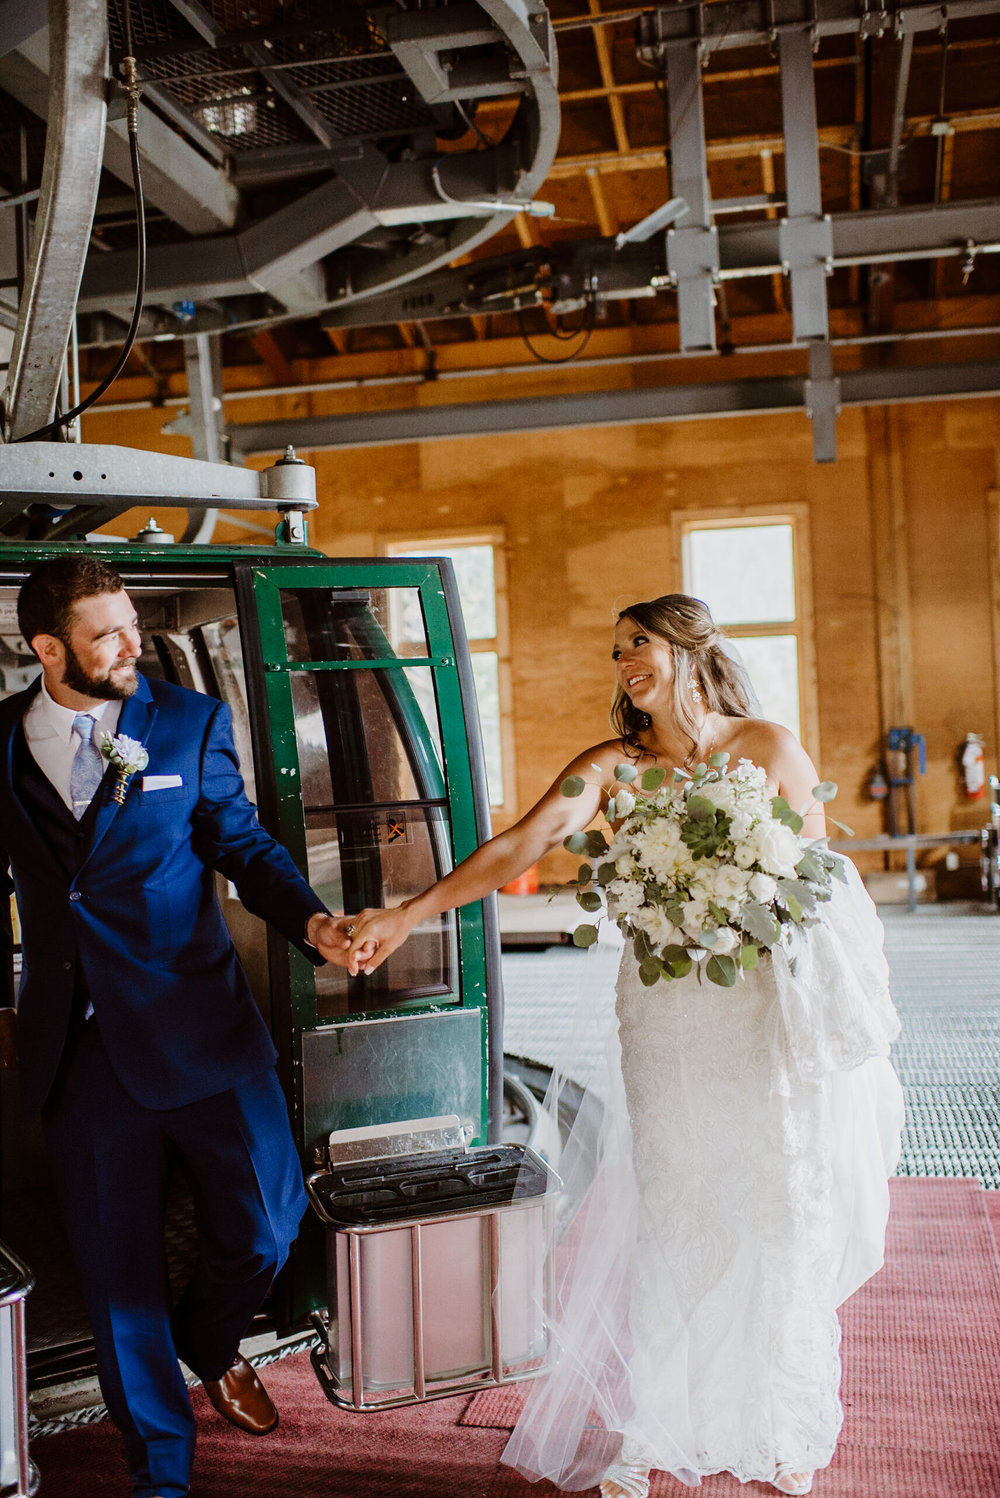 Bride and groom on gondola at Keystone, Colorado mountain wedding